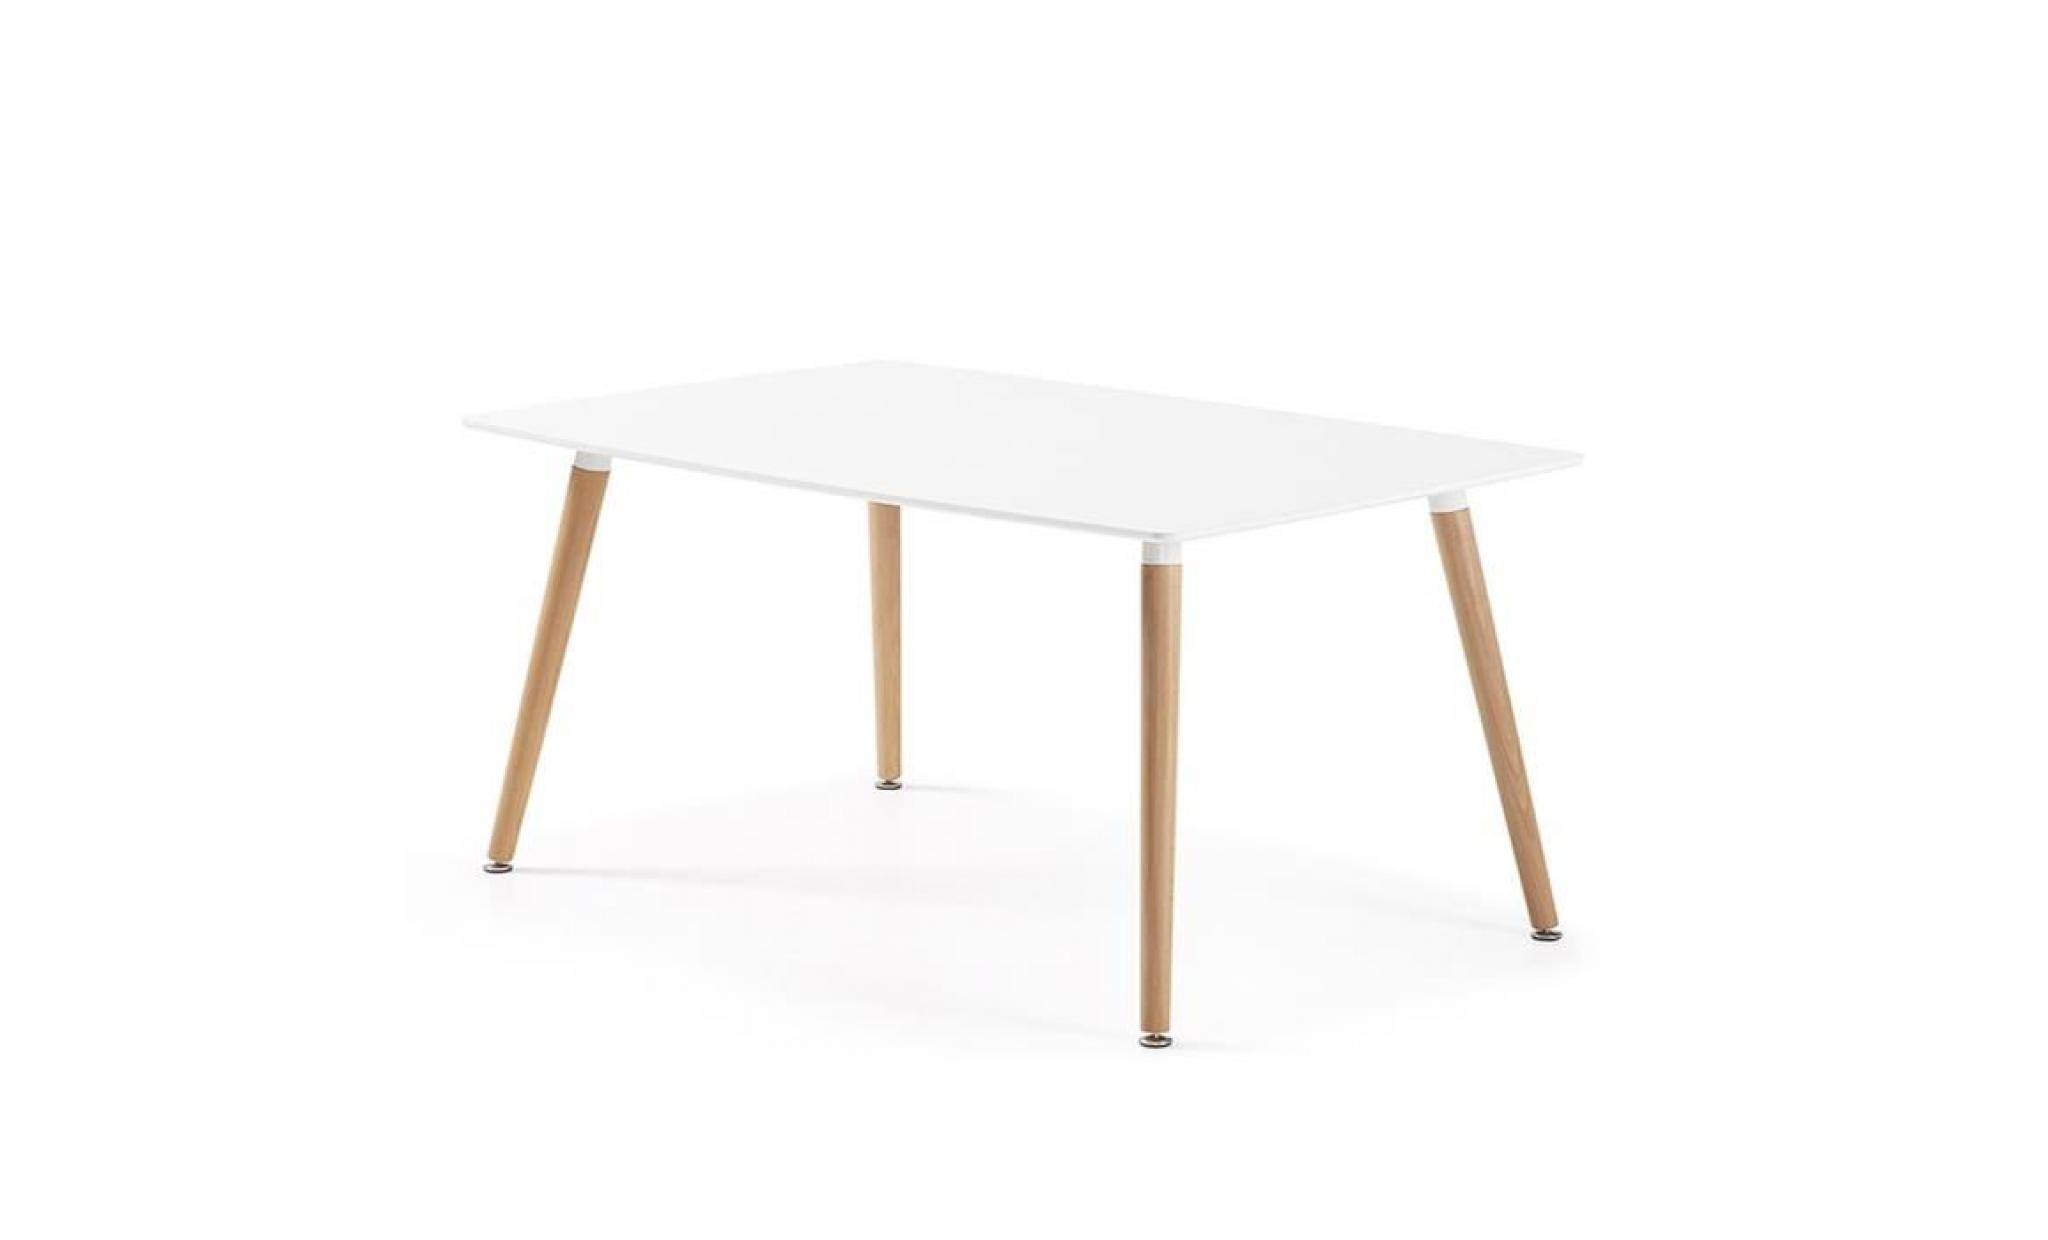 Table manger rectangulaire design blanche en bois laqu - Table rectangulaire pas cher ...